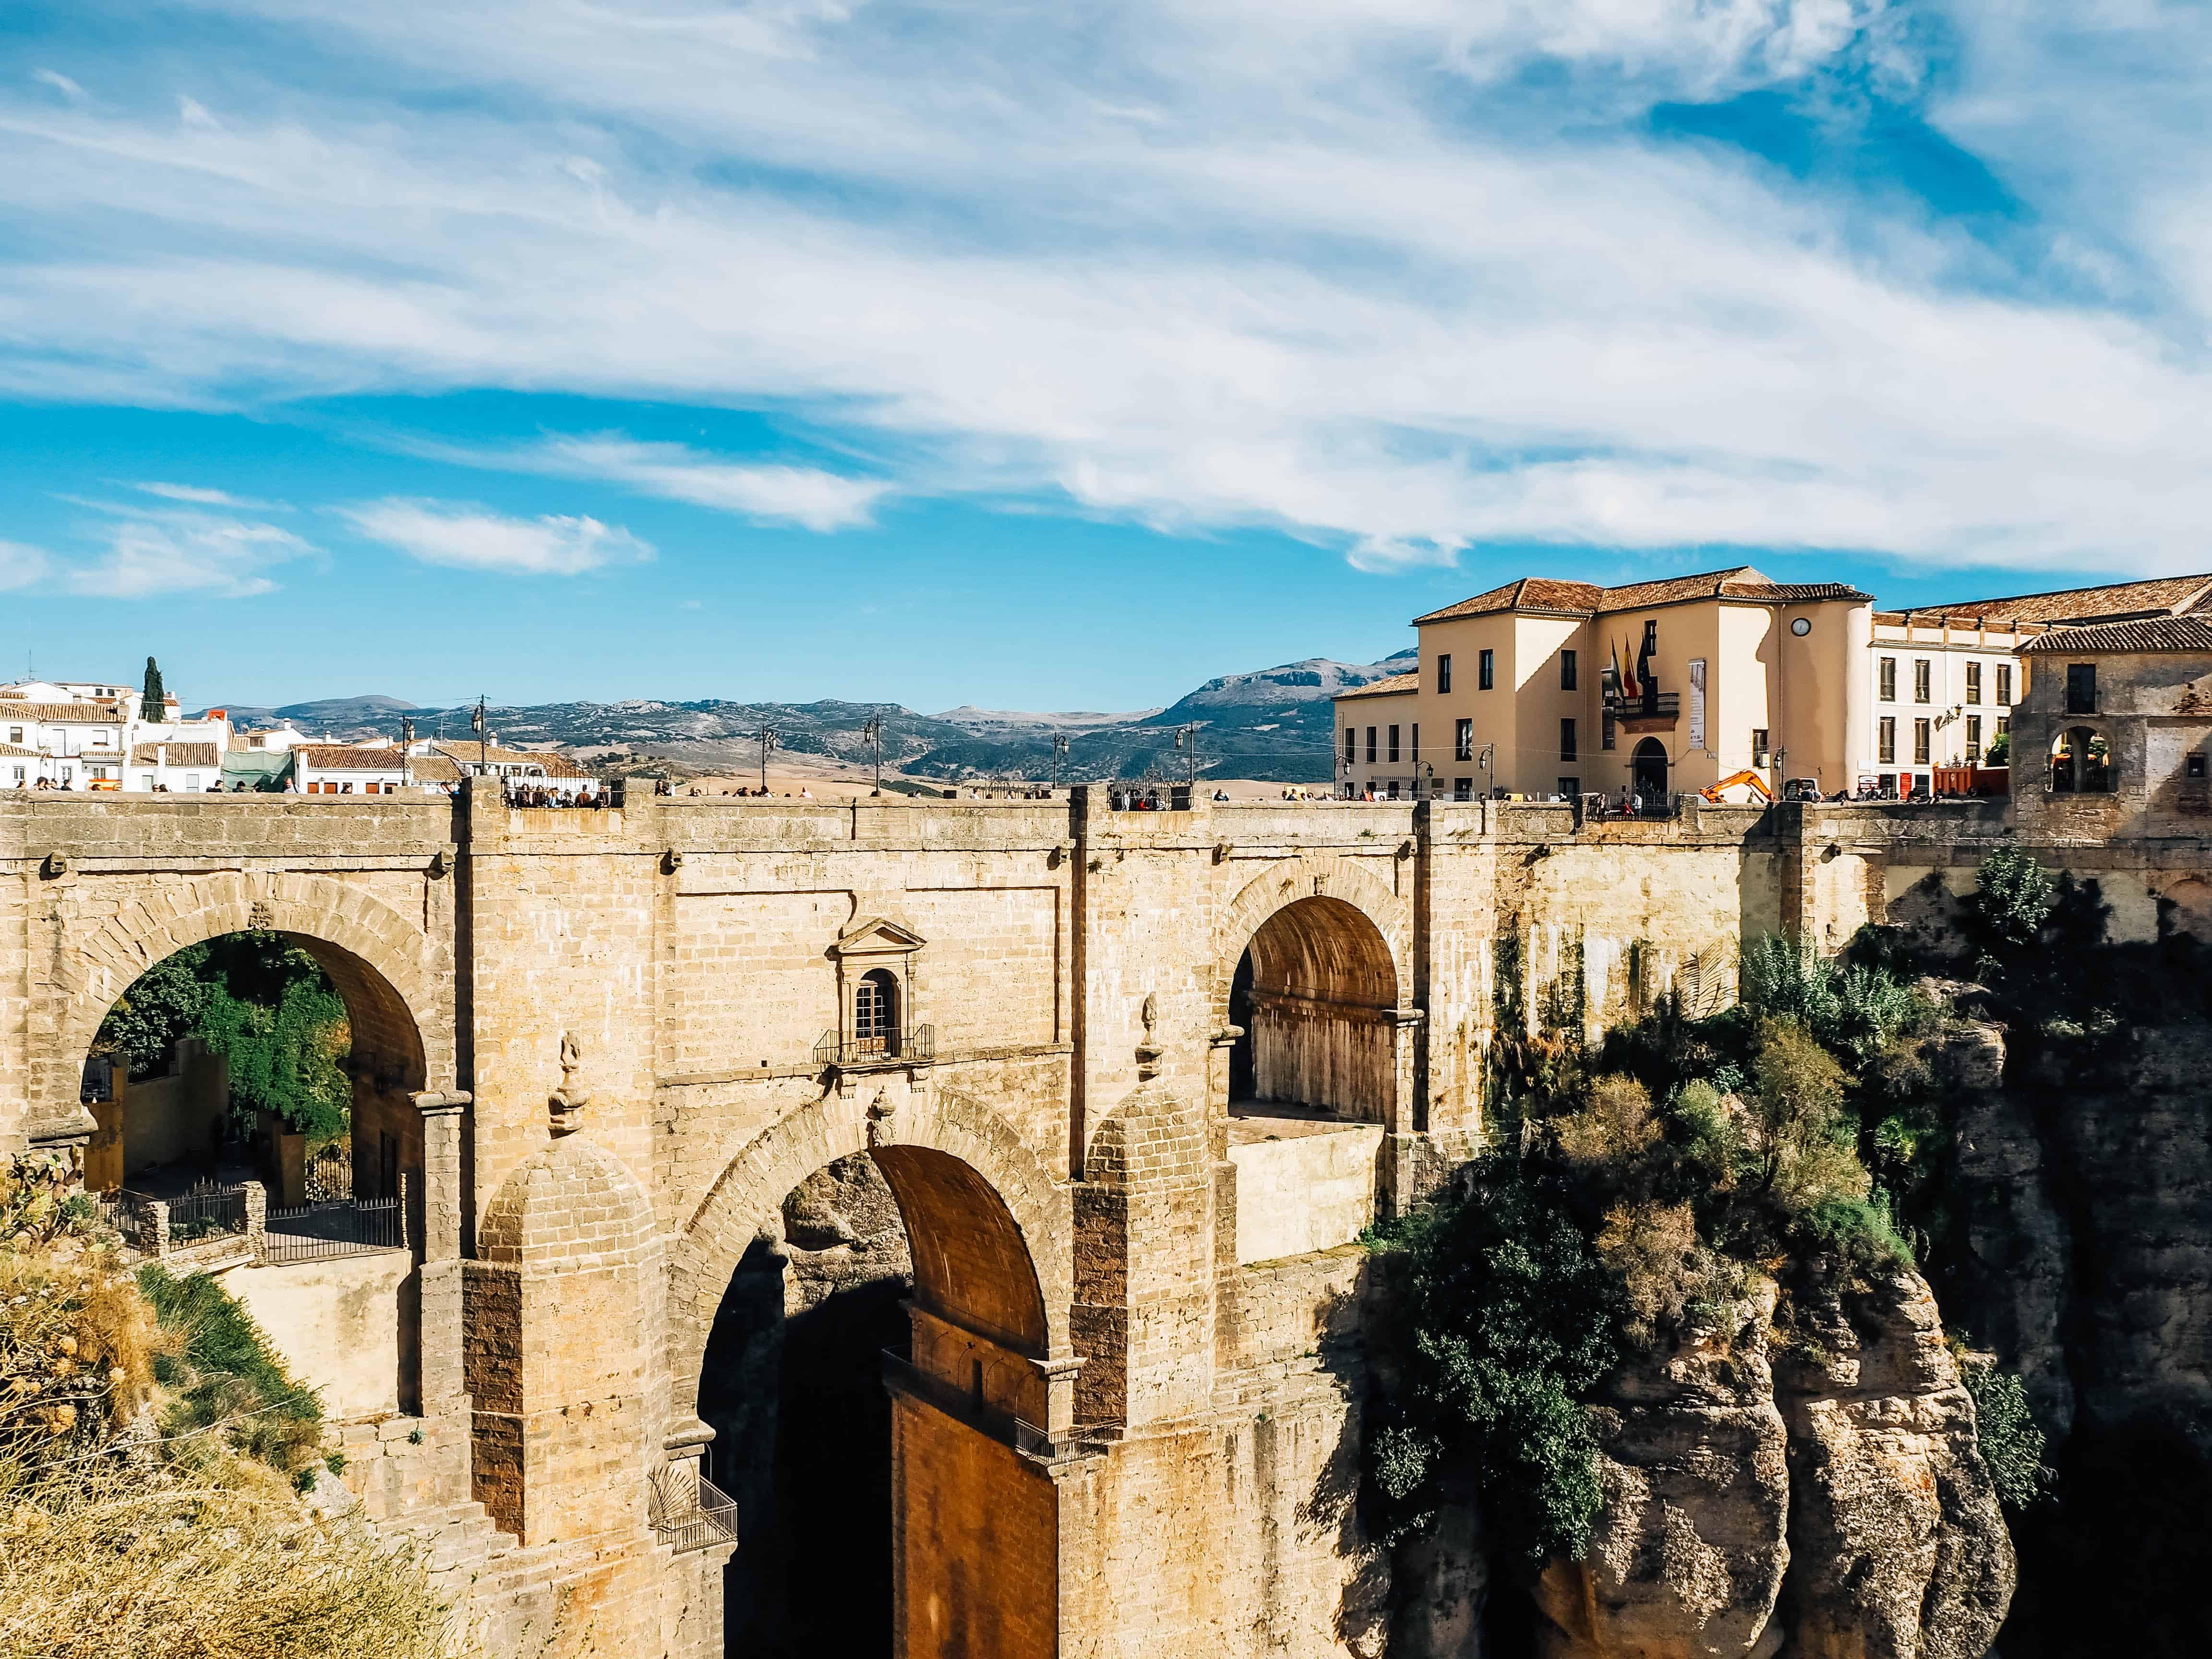 Views For Miles On An Incredible Day Trip To Ronda Spain